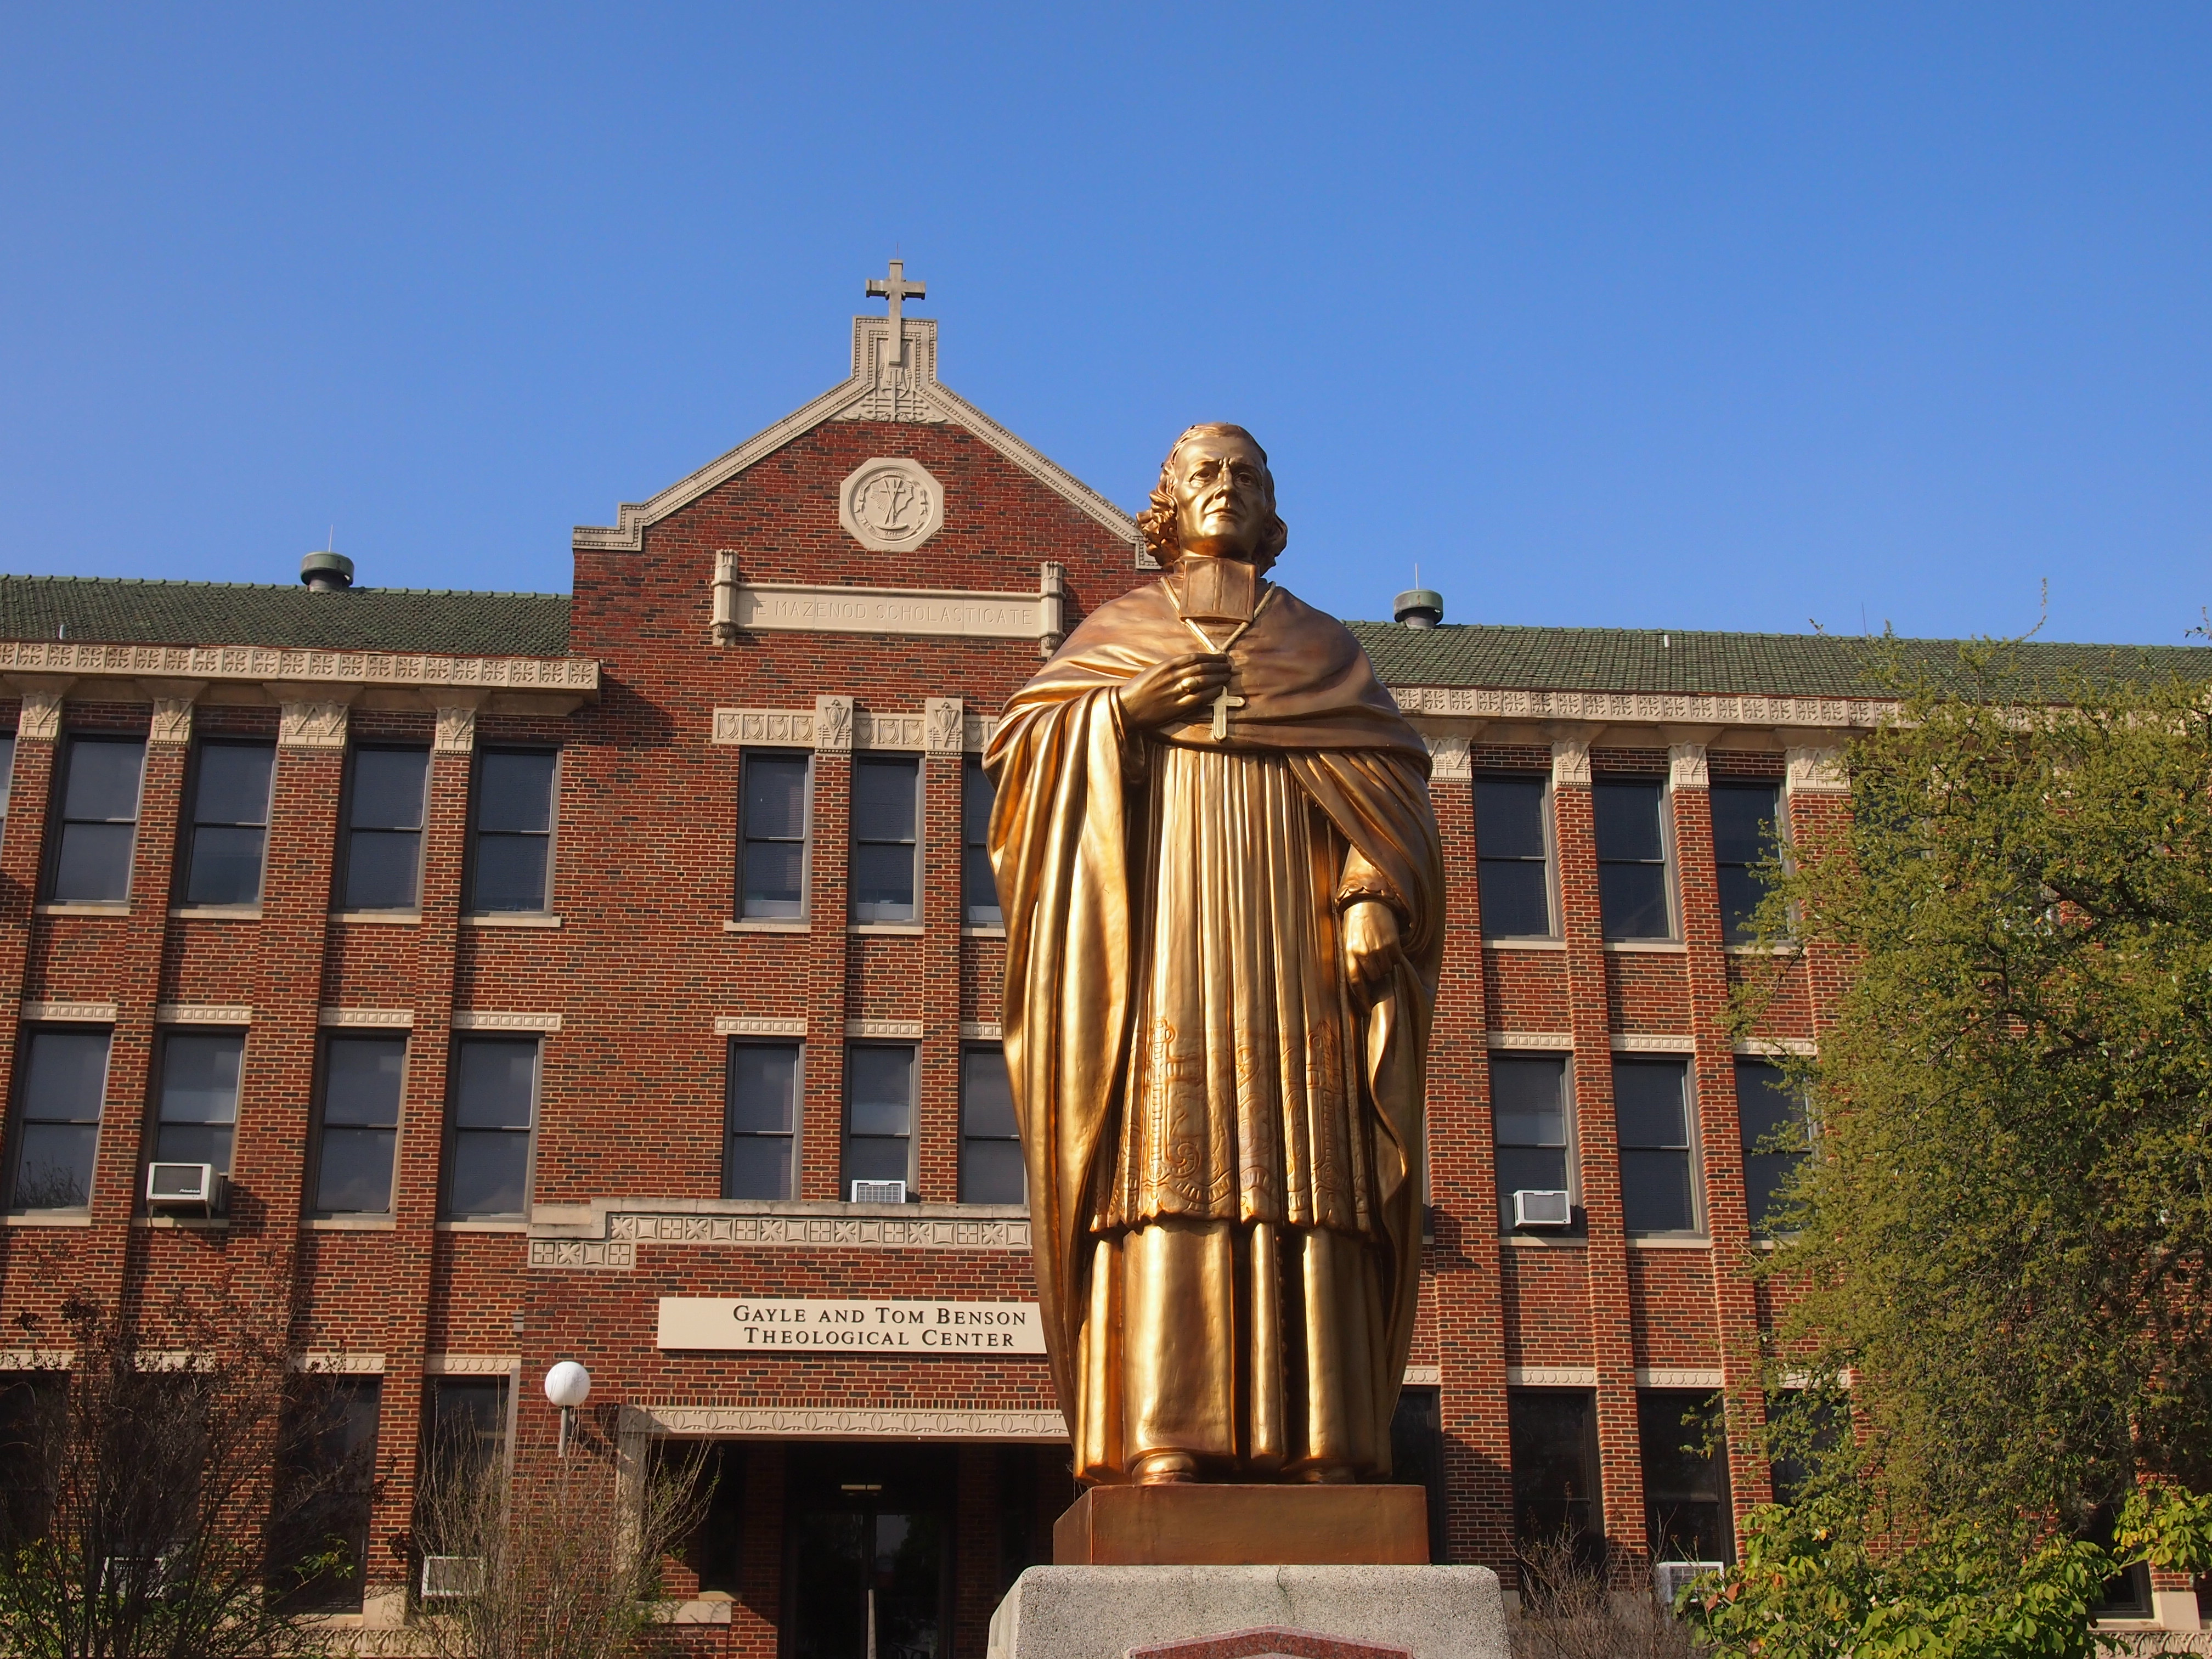 Oblate Theological School